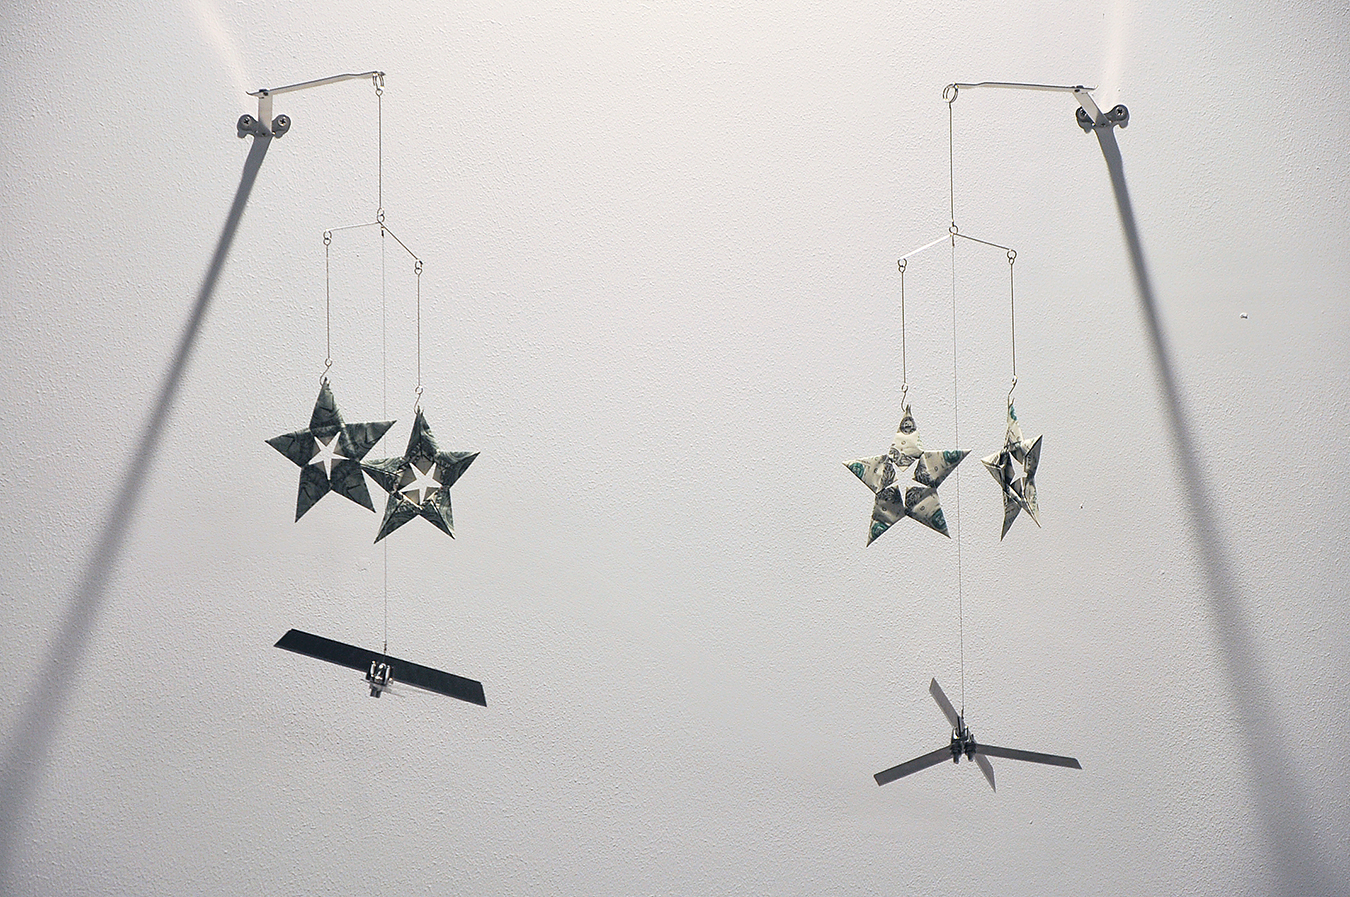 Twinkle Twinkle Little Drone  - Mobile series, Altered toy mobile, banknotes, stainless steel, plastic and metal wire, various sizes, Installation dimensions variable